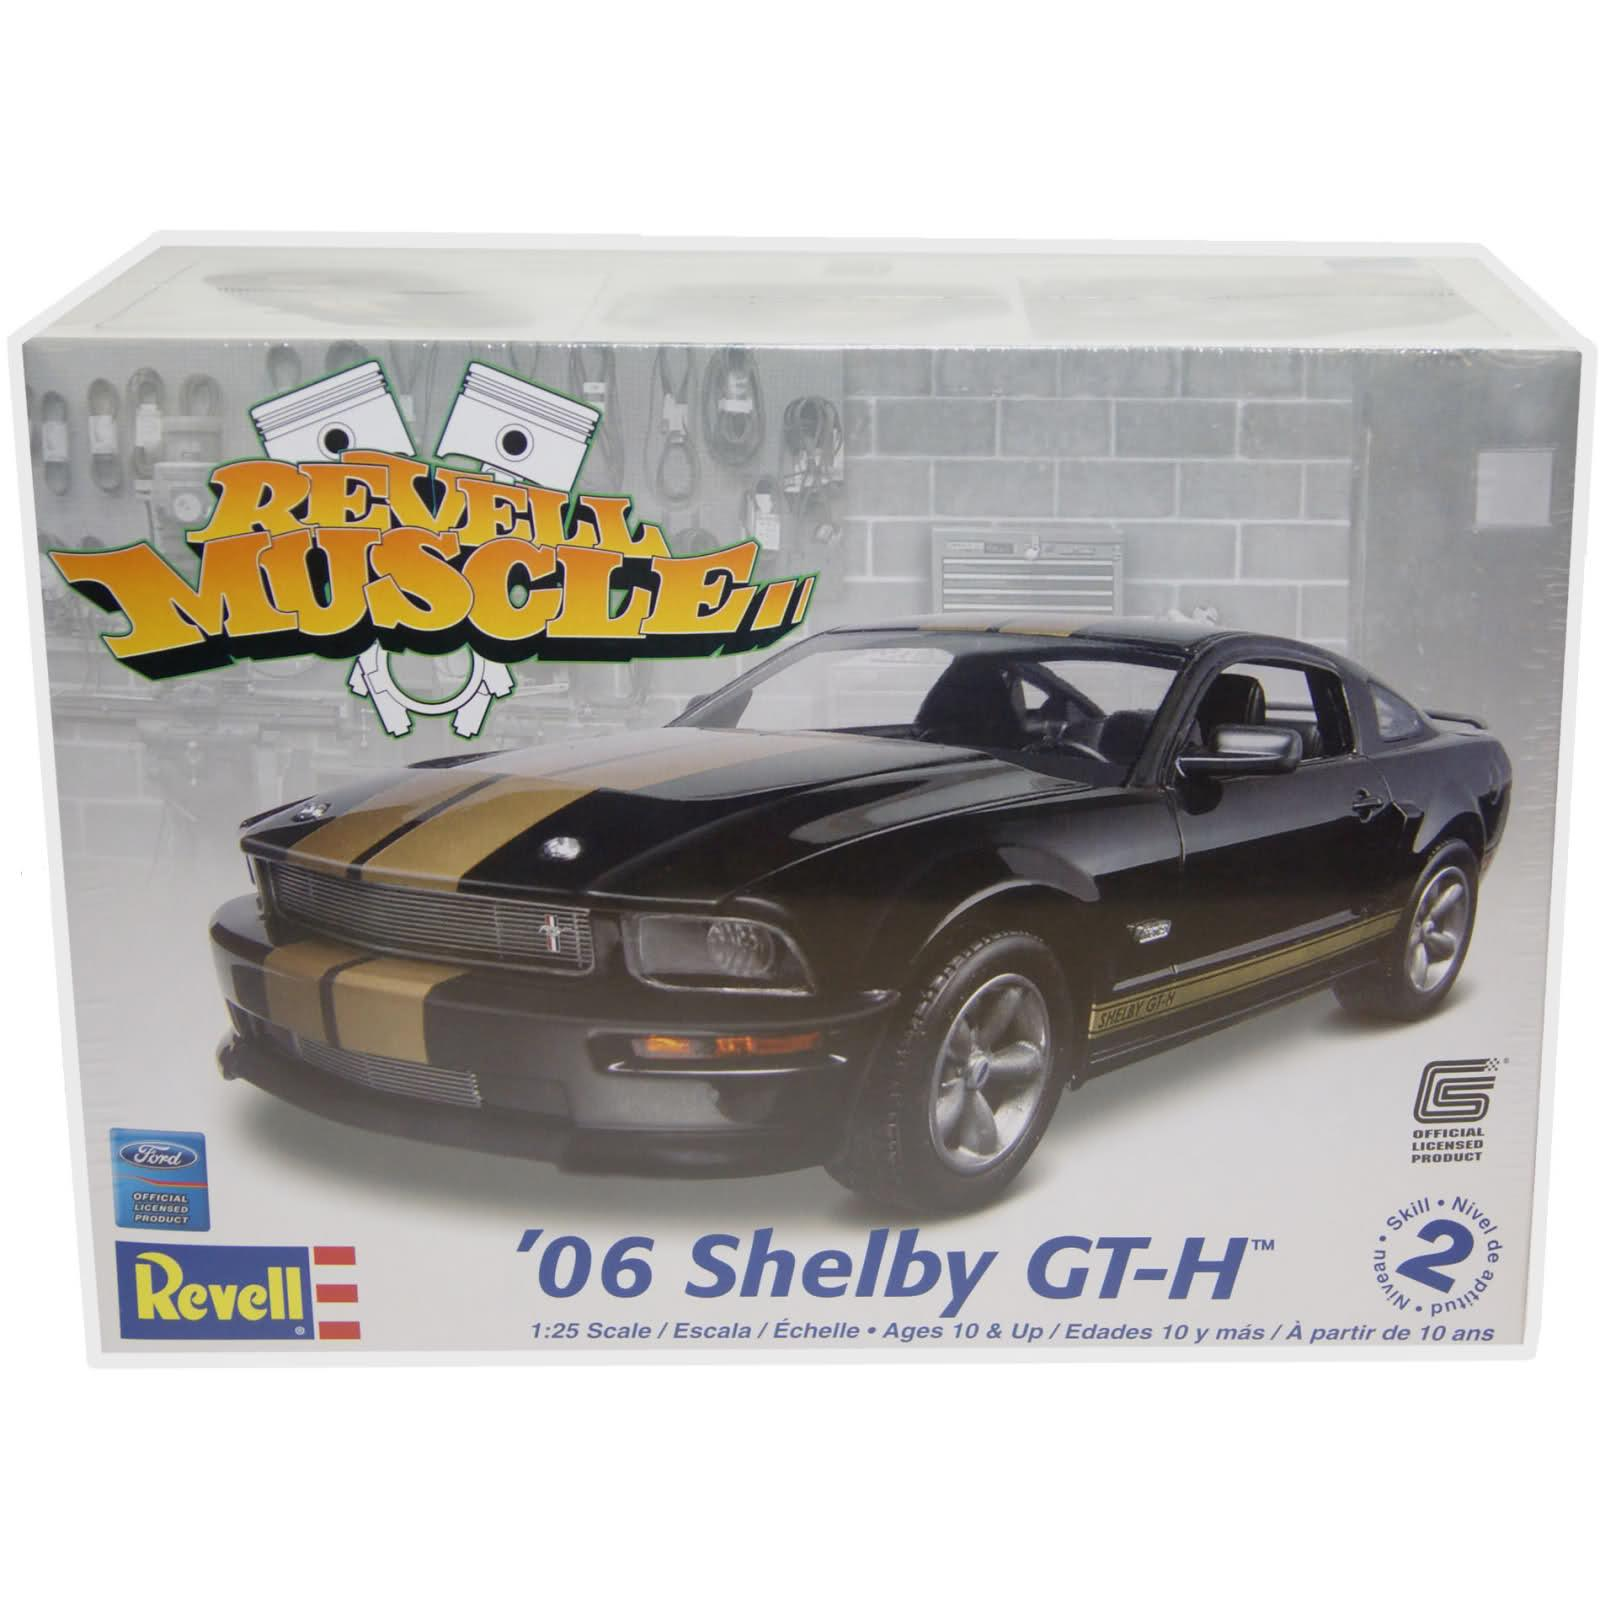 Revell 1:25 Scale 2006 Shelby GT Model